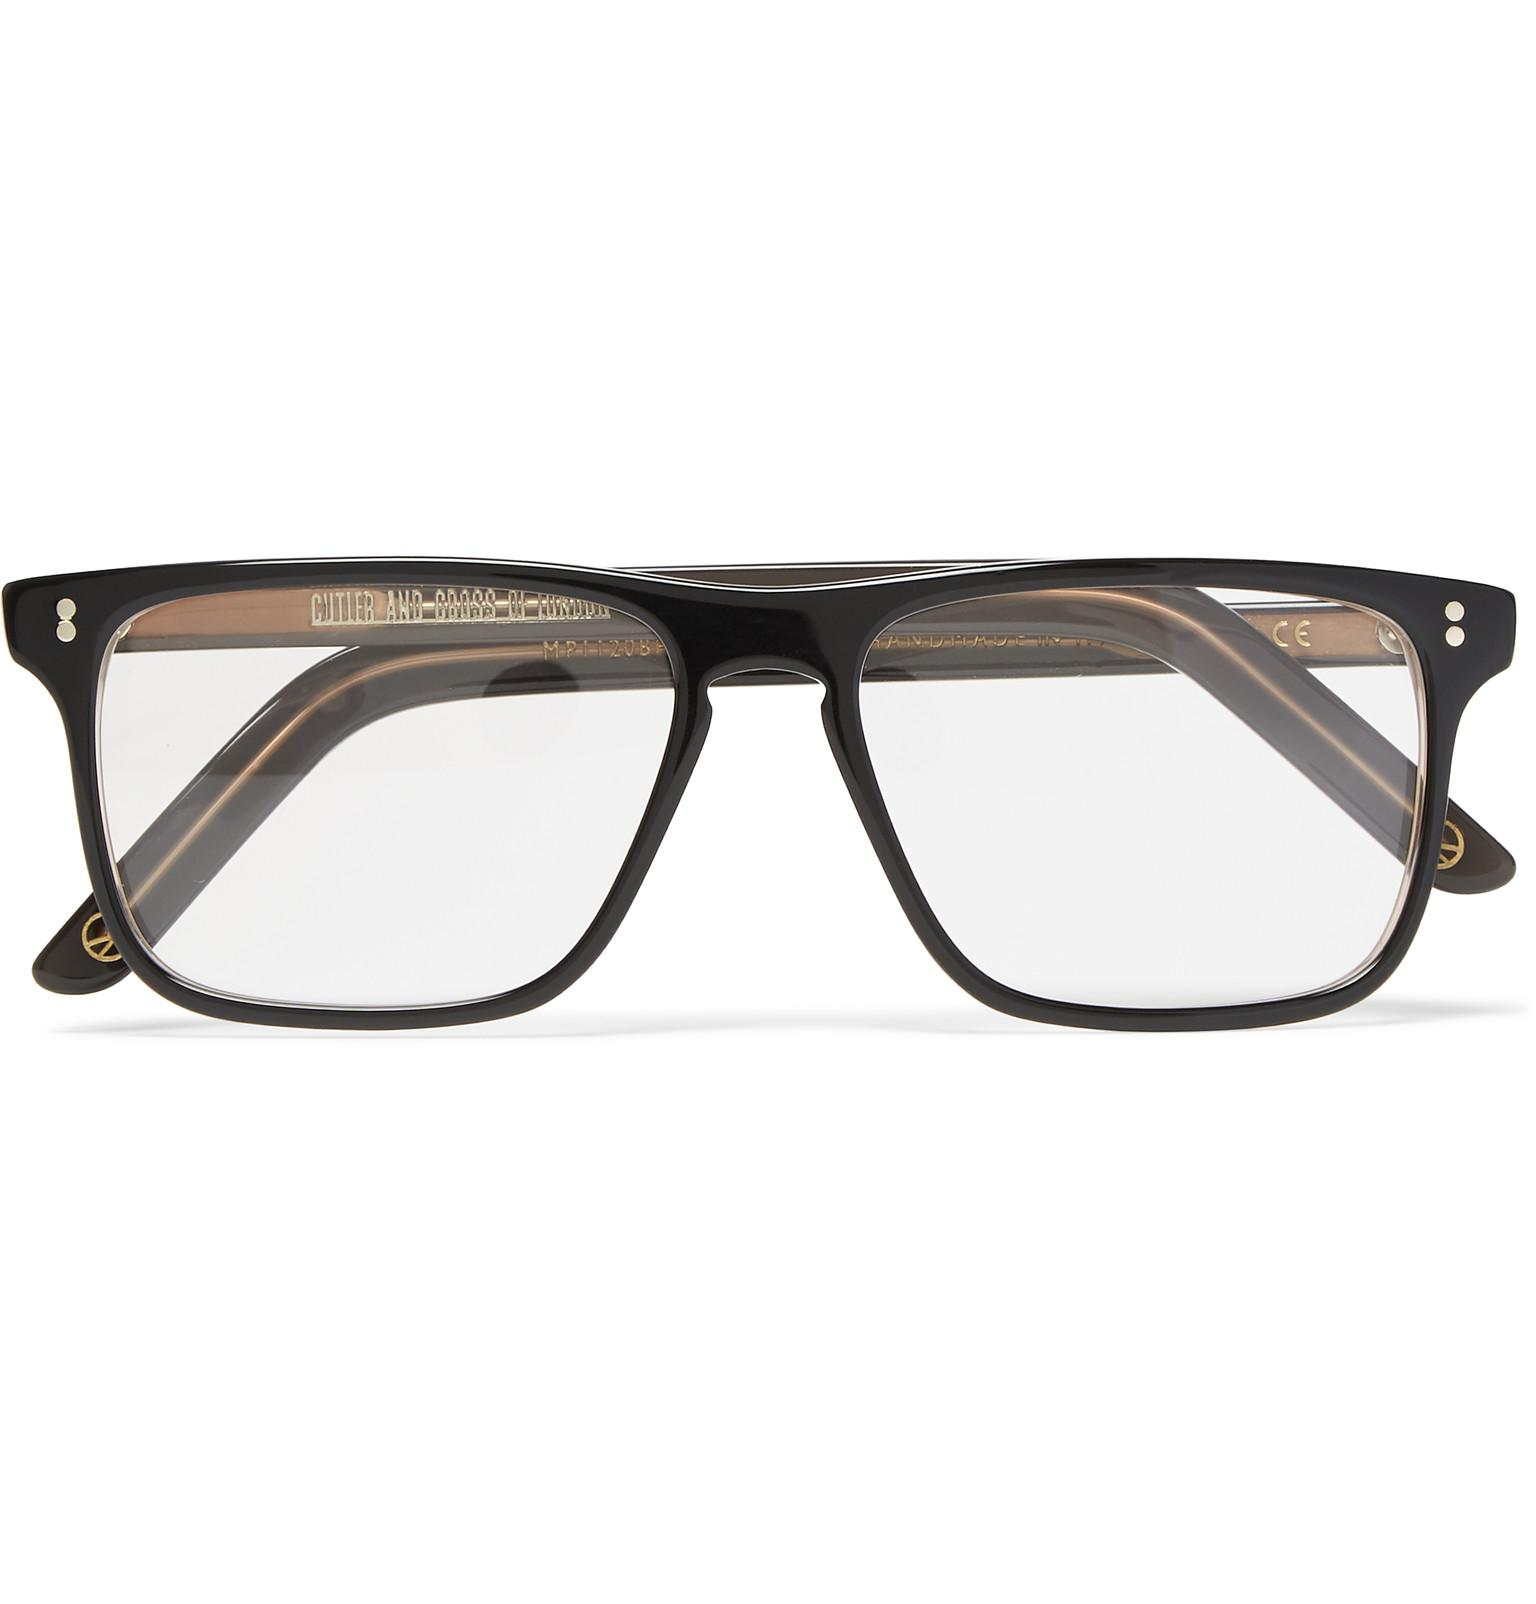 3ece3989bd Lyst - Kingsman Cutler And Gross Square-frame Acetate Optical ...